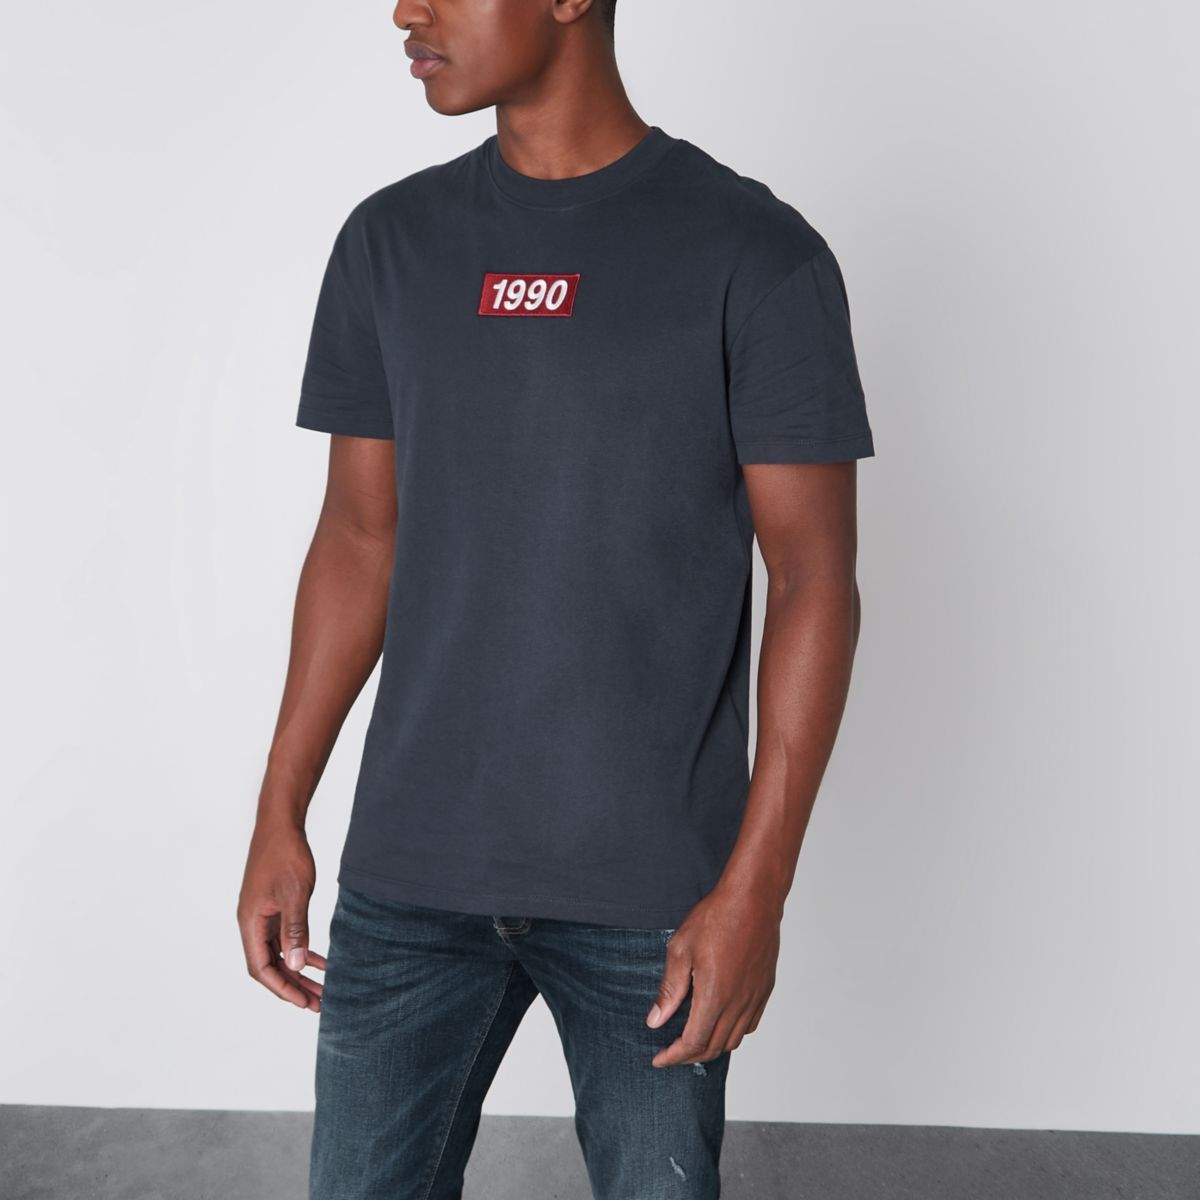 Jack & Jones navy '1990' embroidered T-shirt